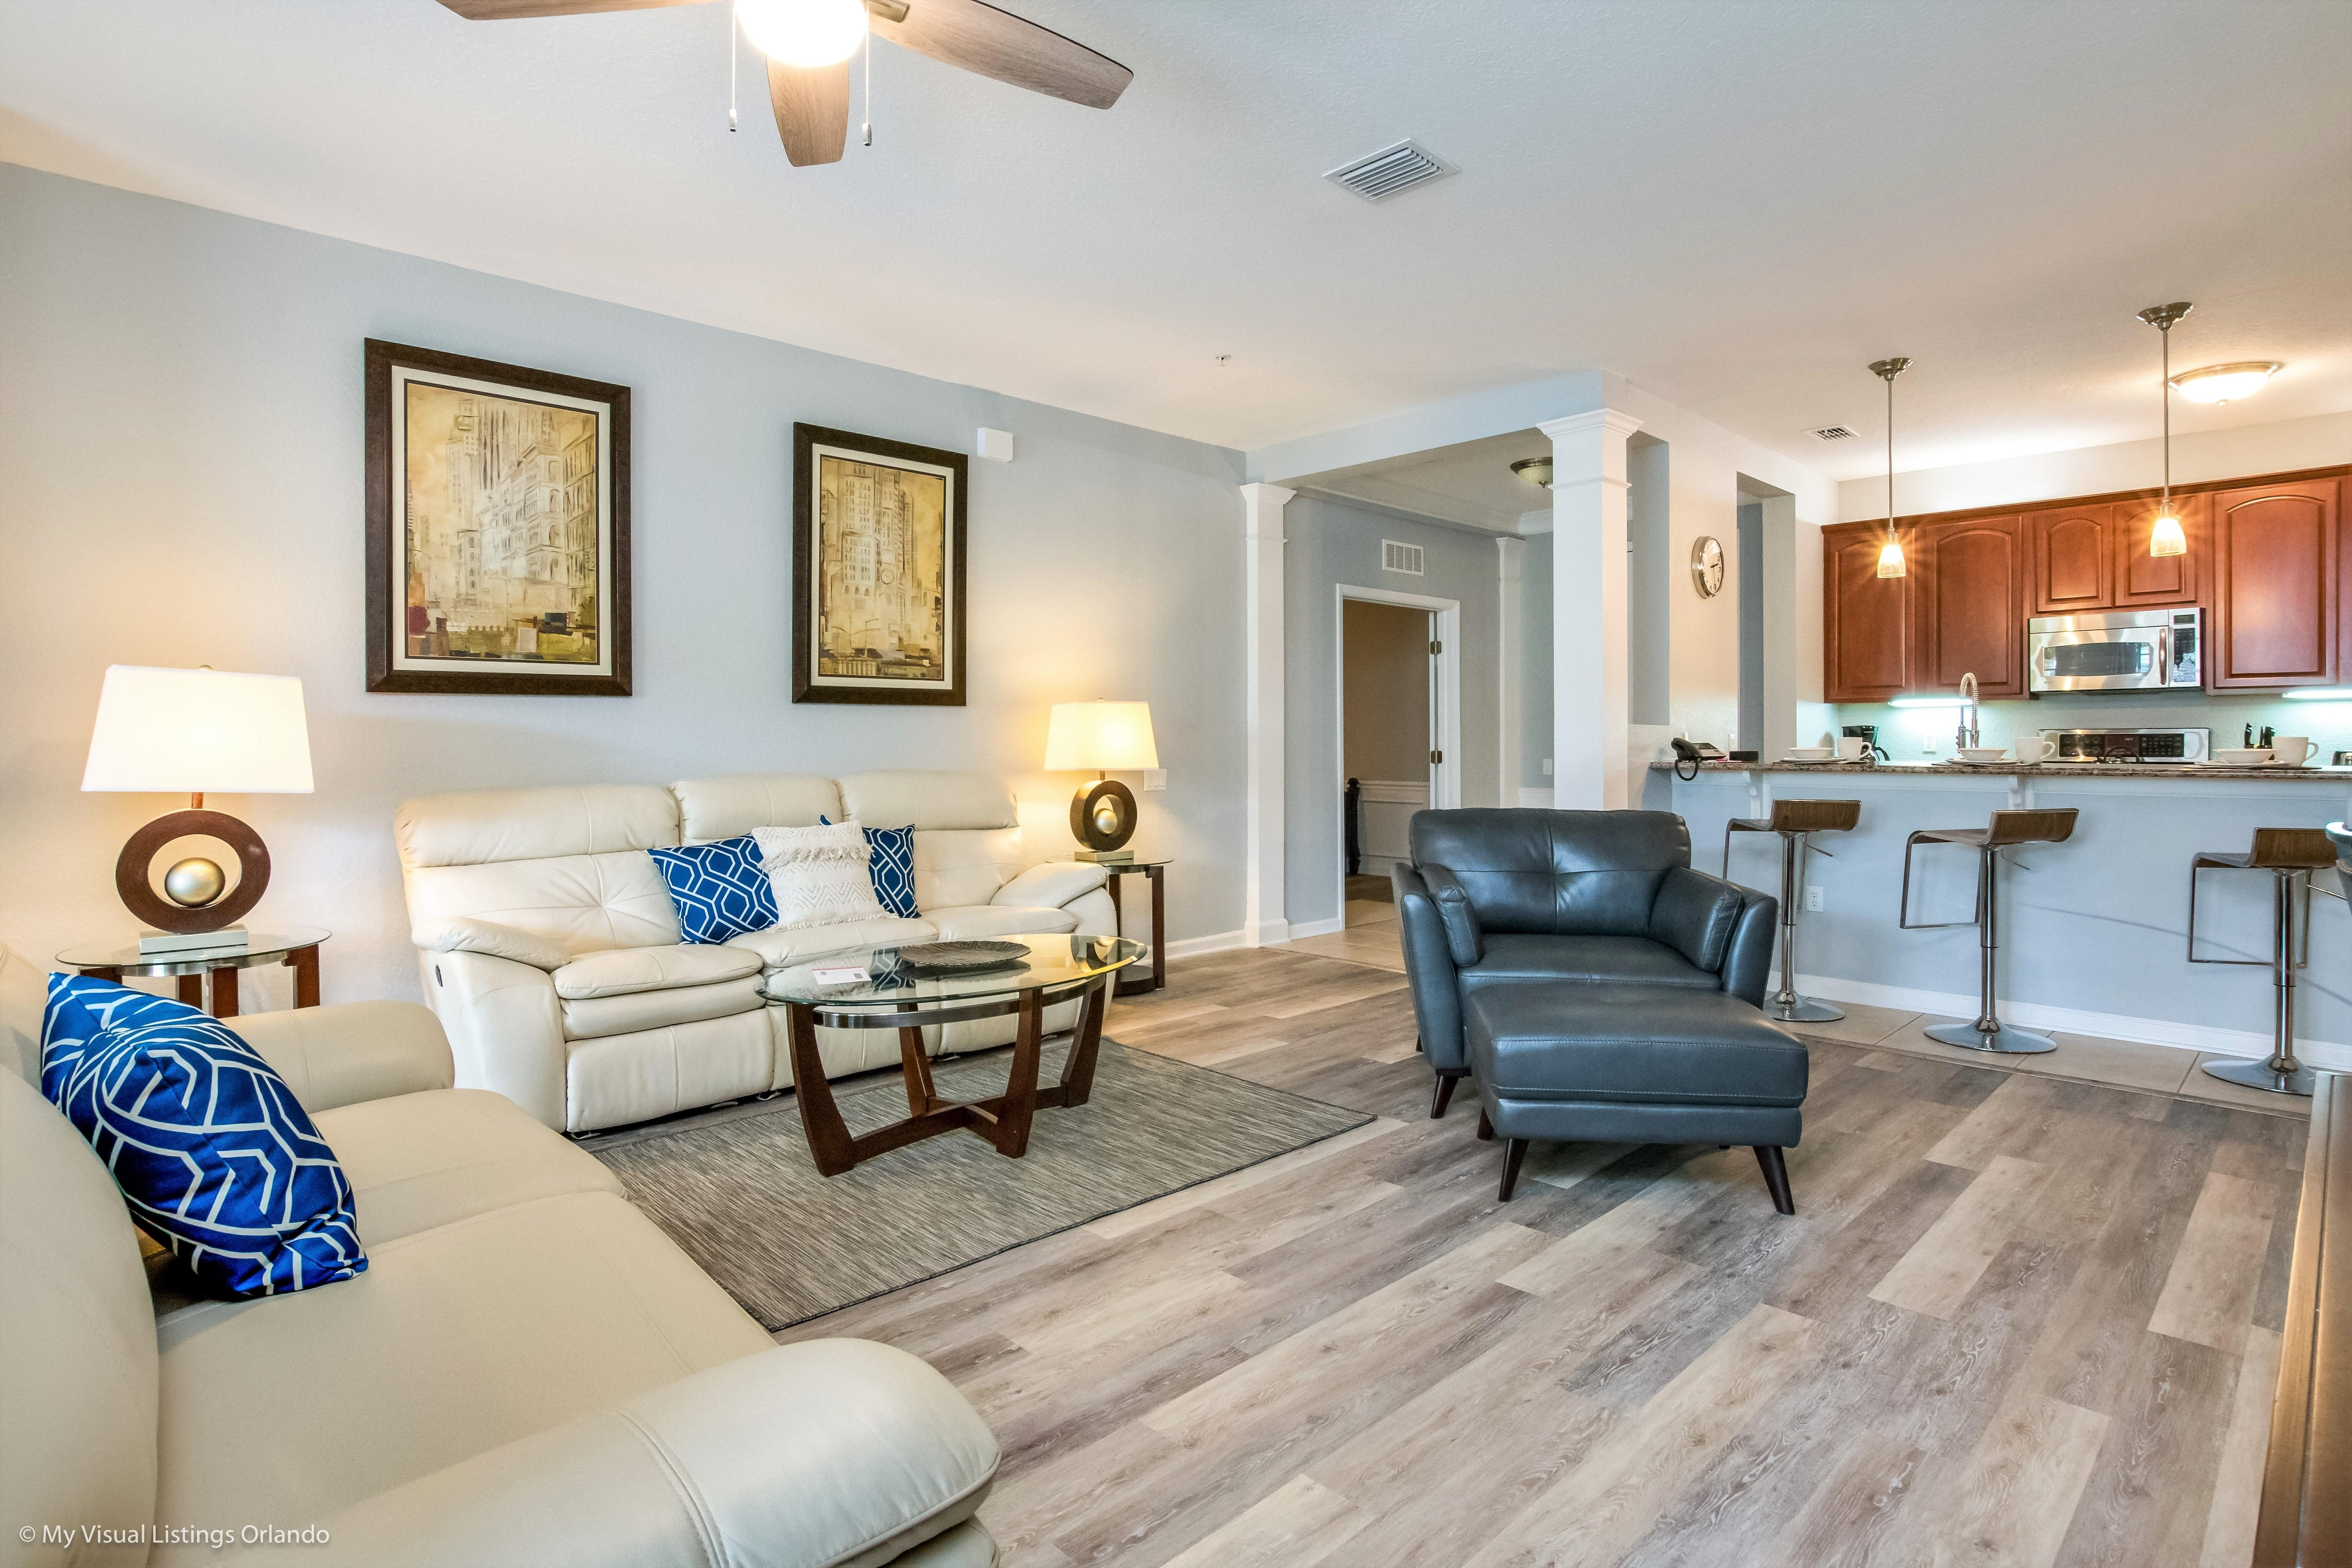 Luxurious Modern Condo with Private Balcony Near Disney World